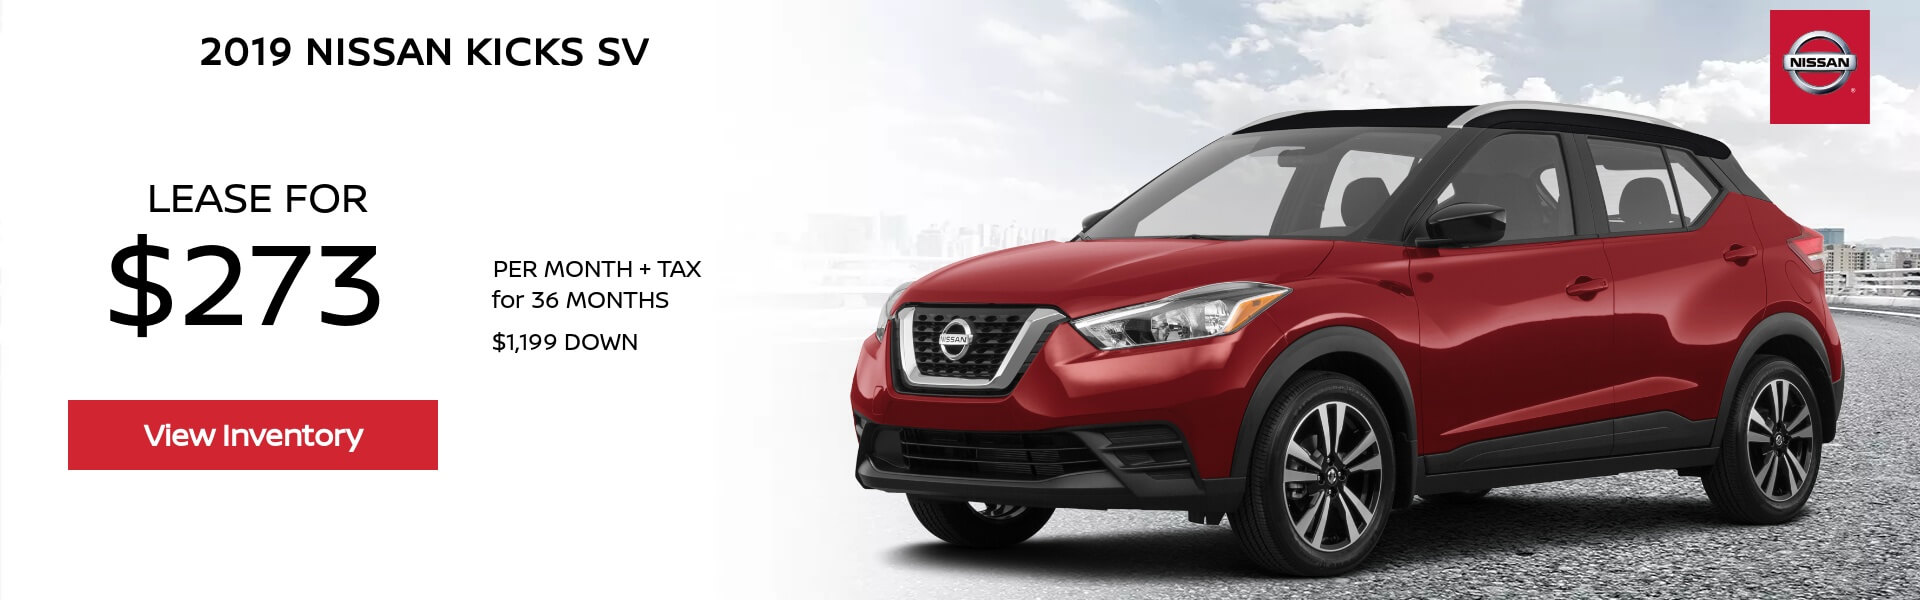 Nissan Kicks $273 Lease